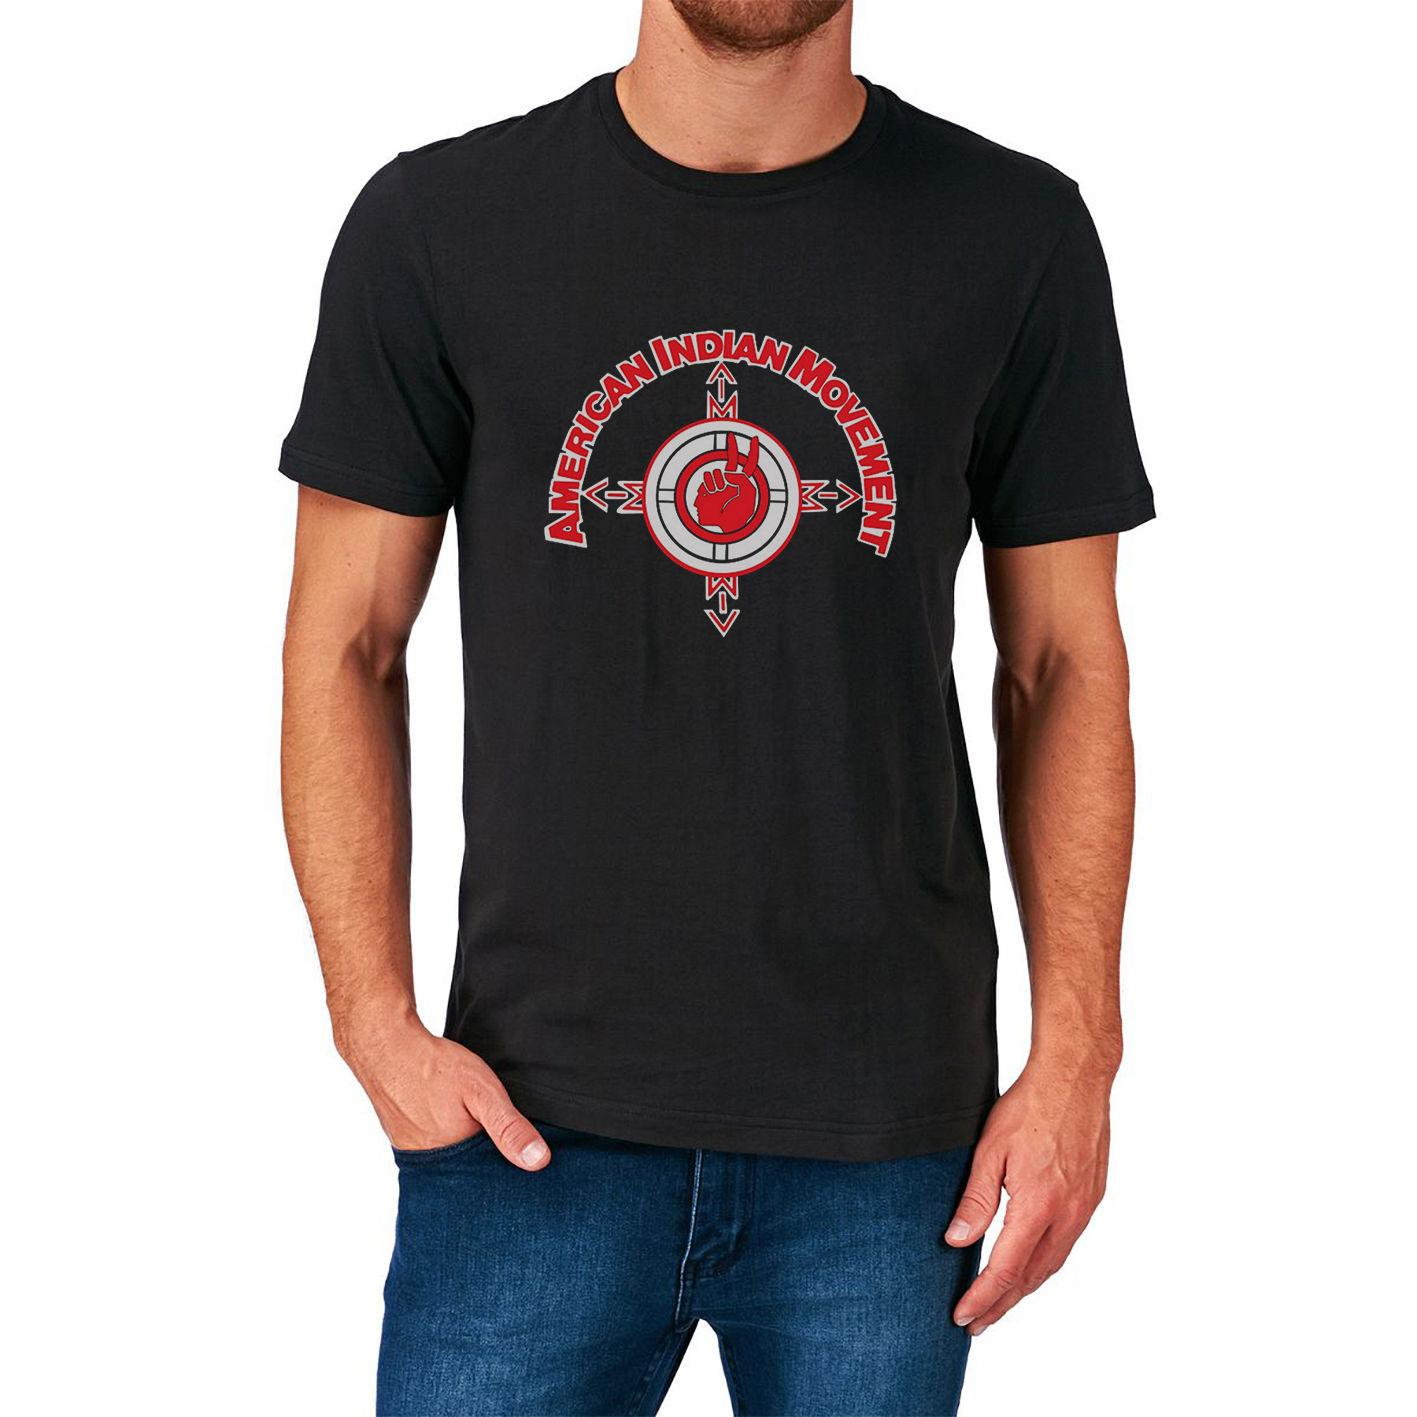 f2214b30 American Indian Movement T Shirt New Native Americans Tribe Tribal Usa Aim  Men T Shirt Novelty O - Neck Tops Cool Online with $30.94/Piece on  Ourslove's ...